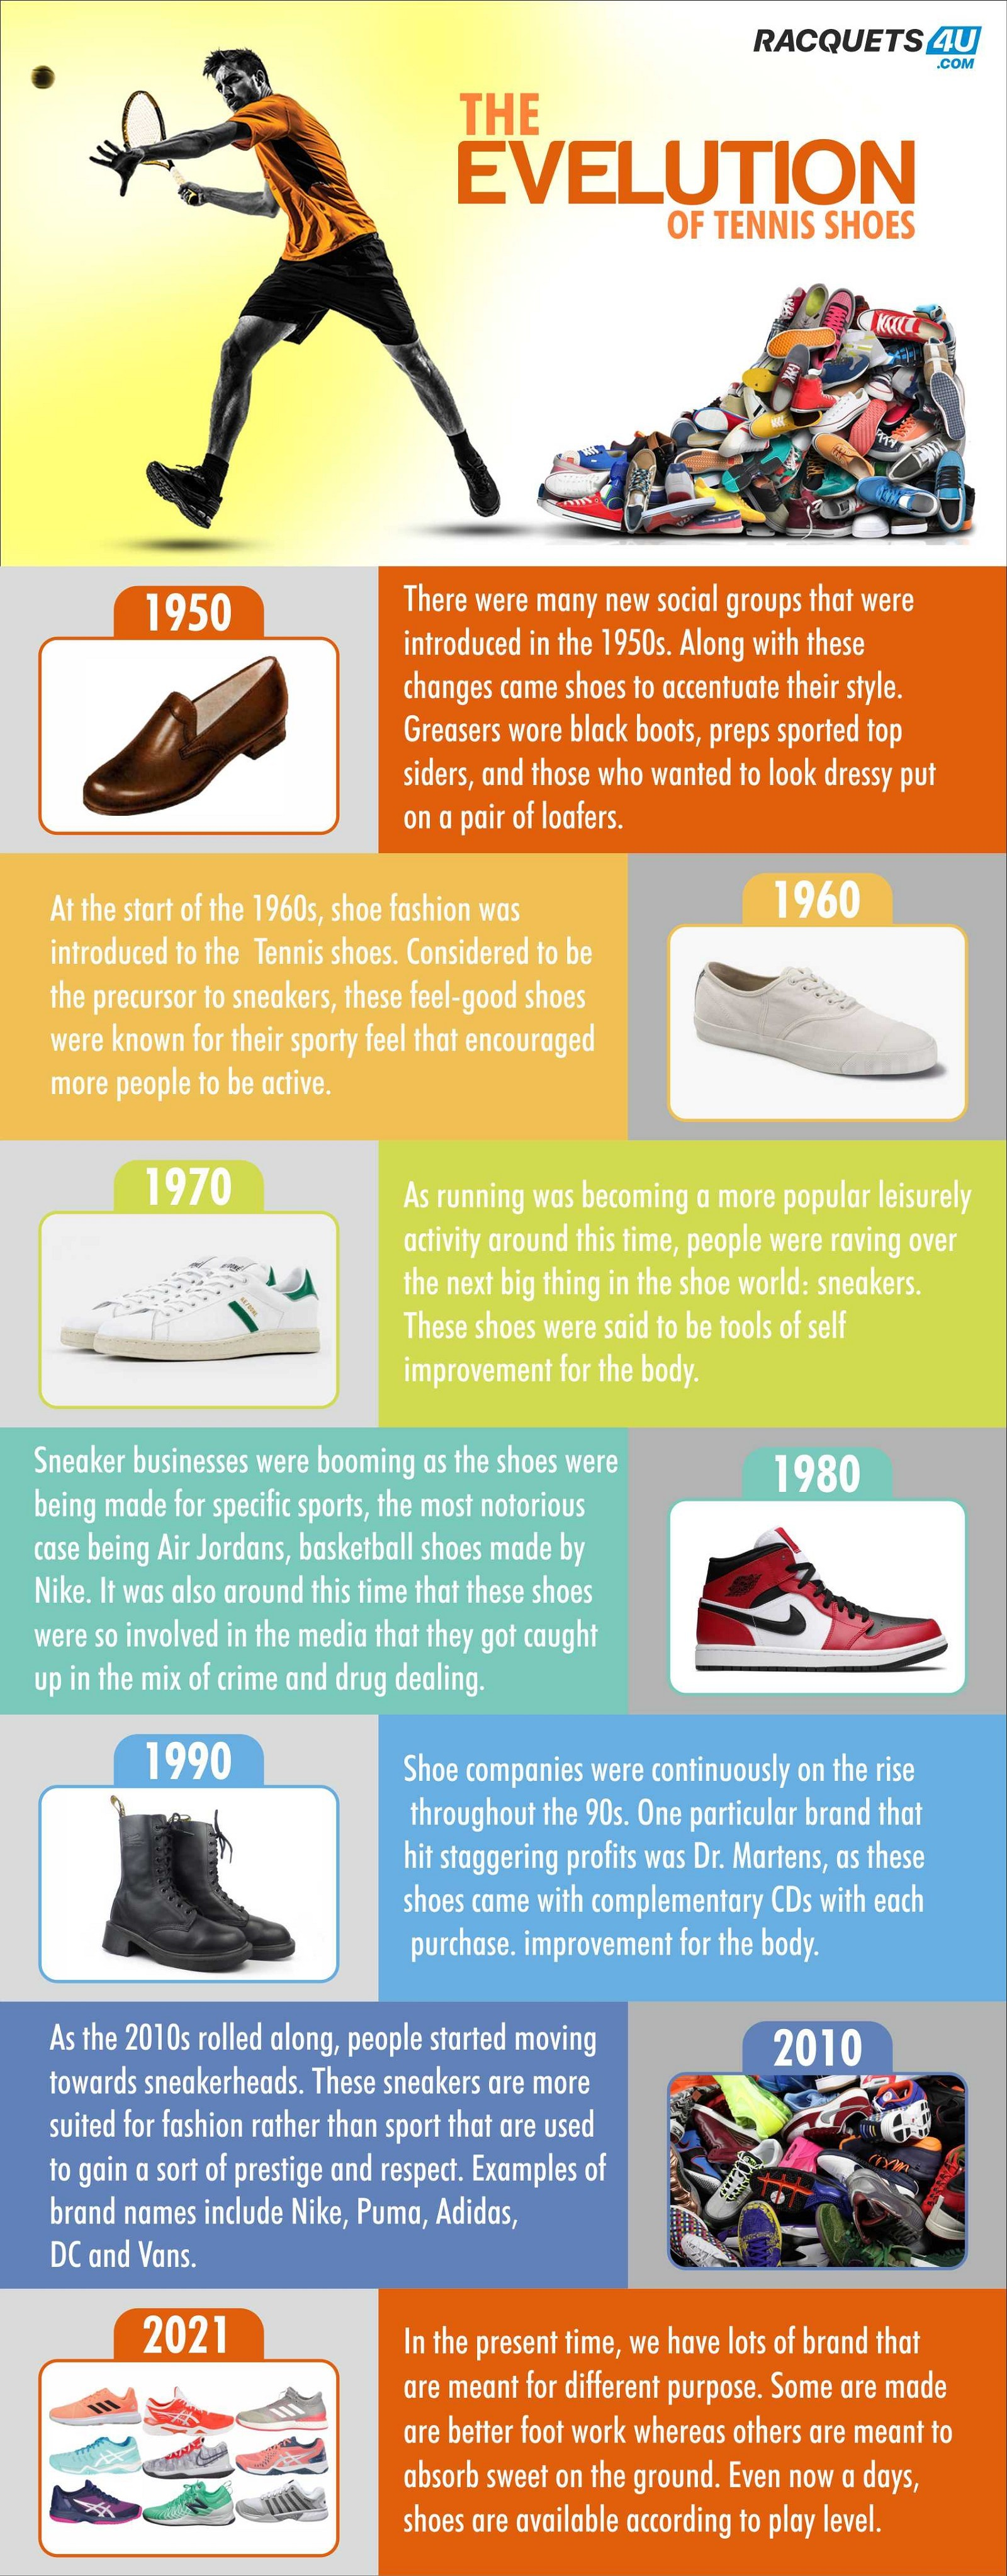 Buy Most Durable Tennis Shoes Online at Best Price in India